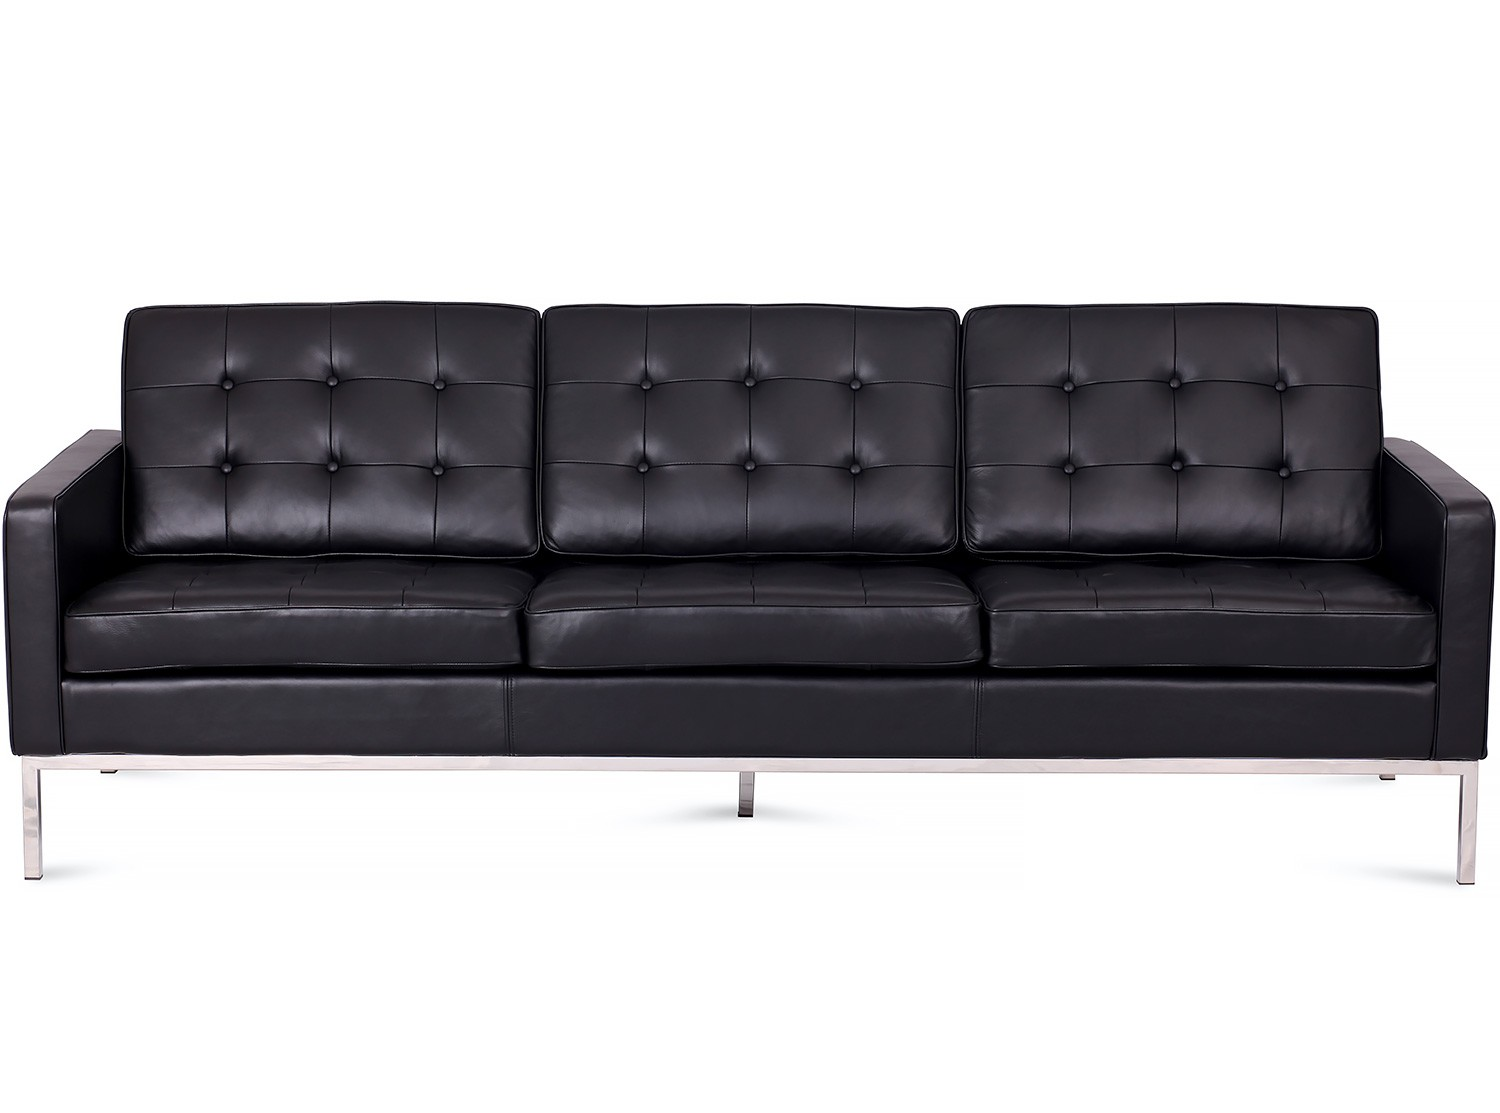 Florence Knoll Sofa 3 Seater Leather Platinum Replica